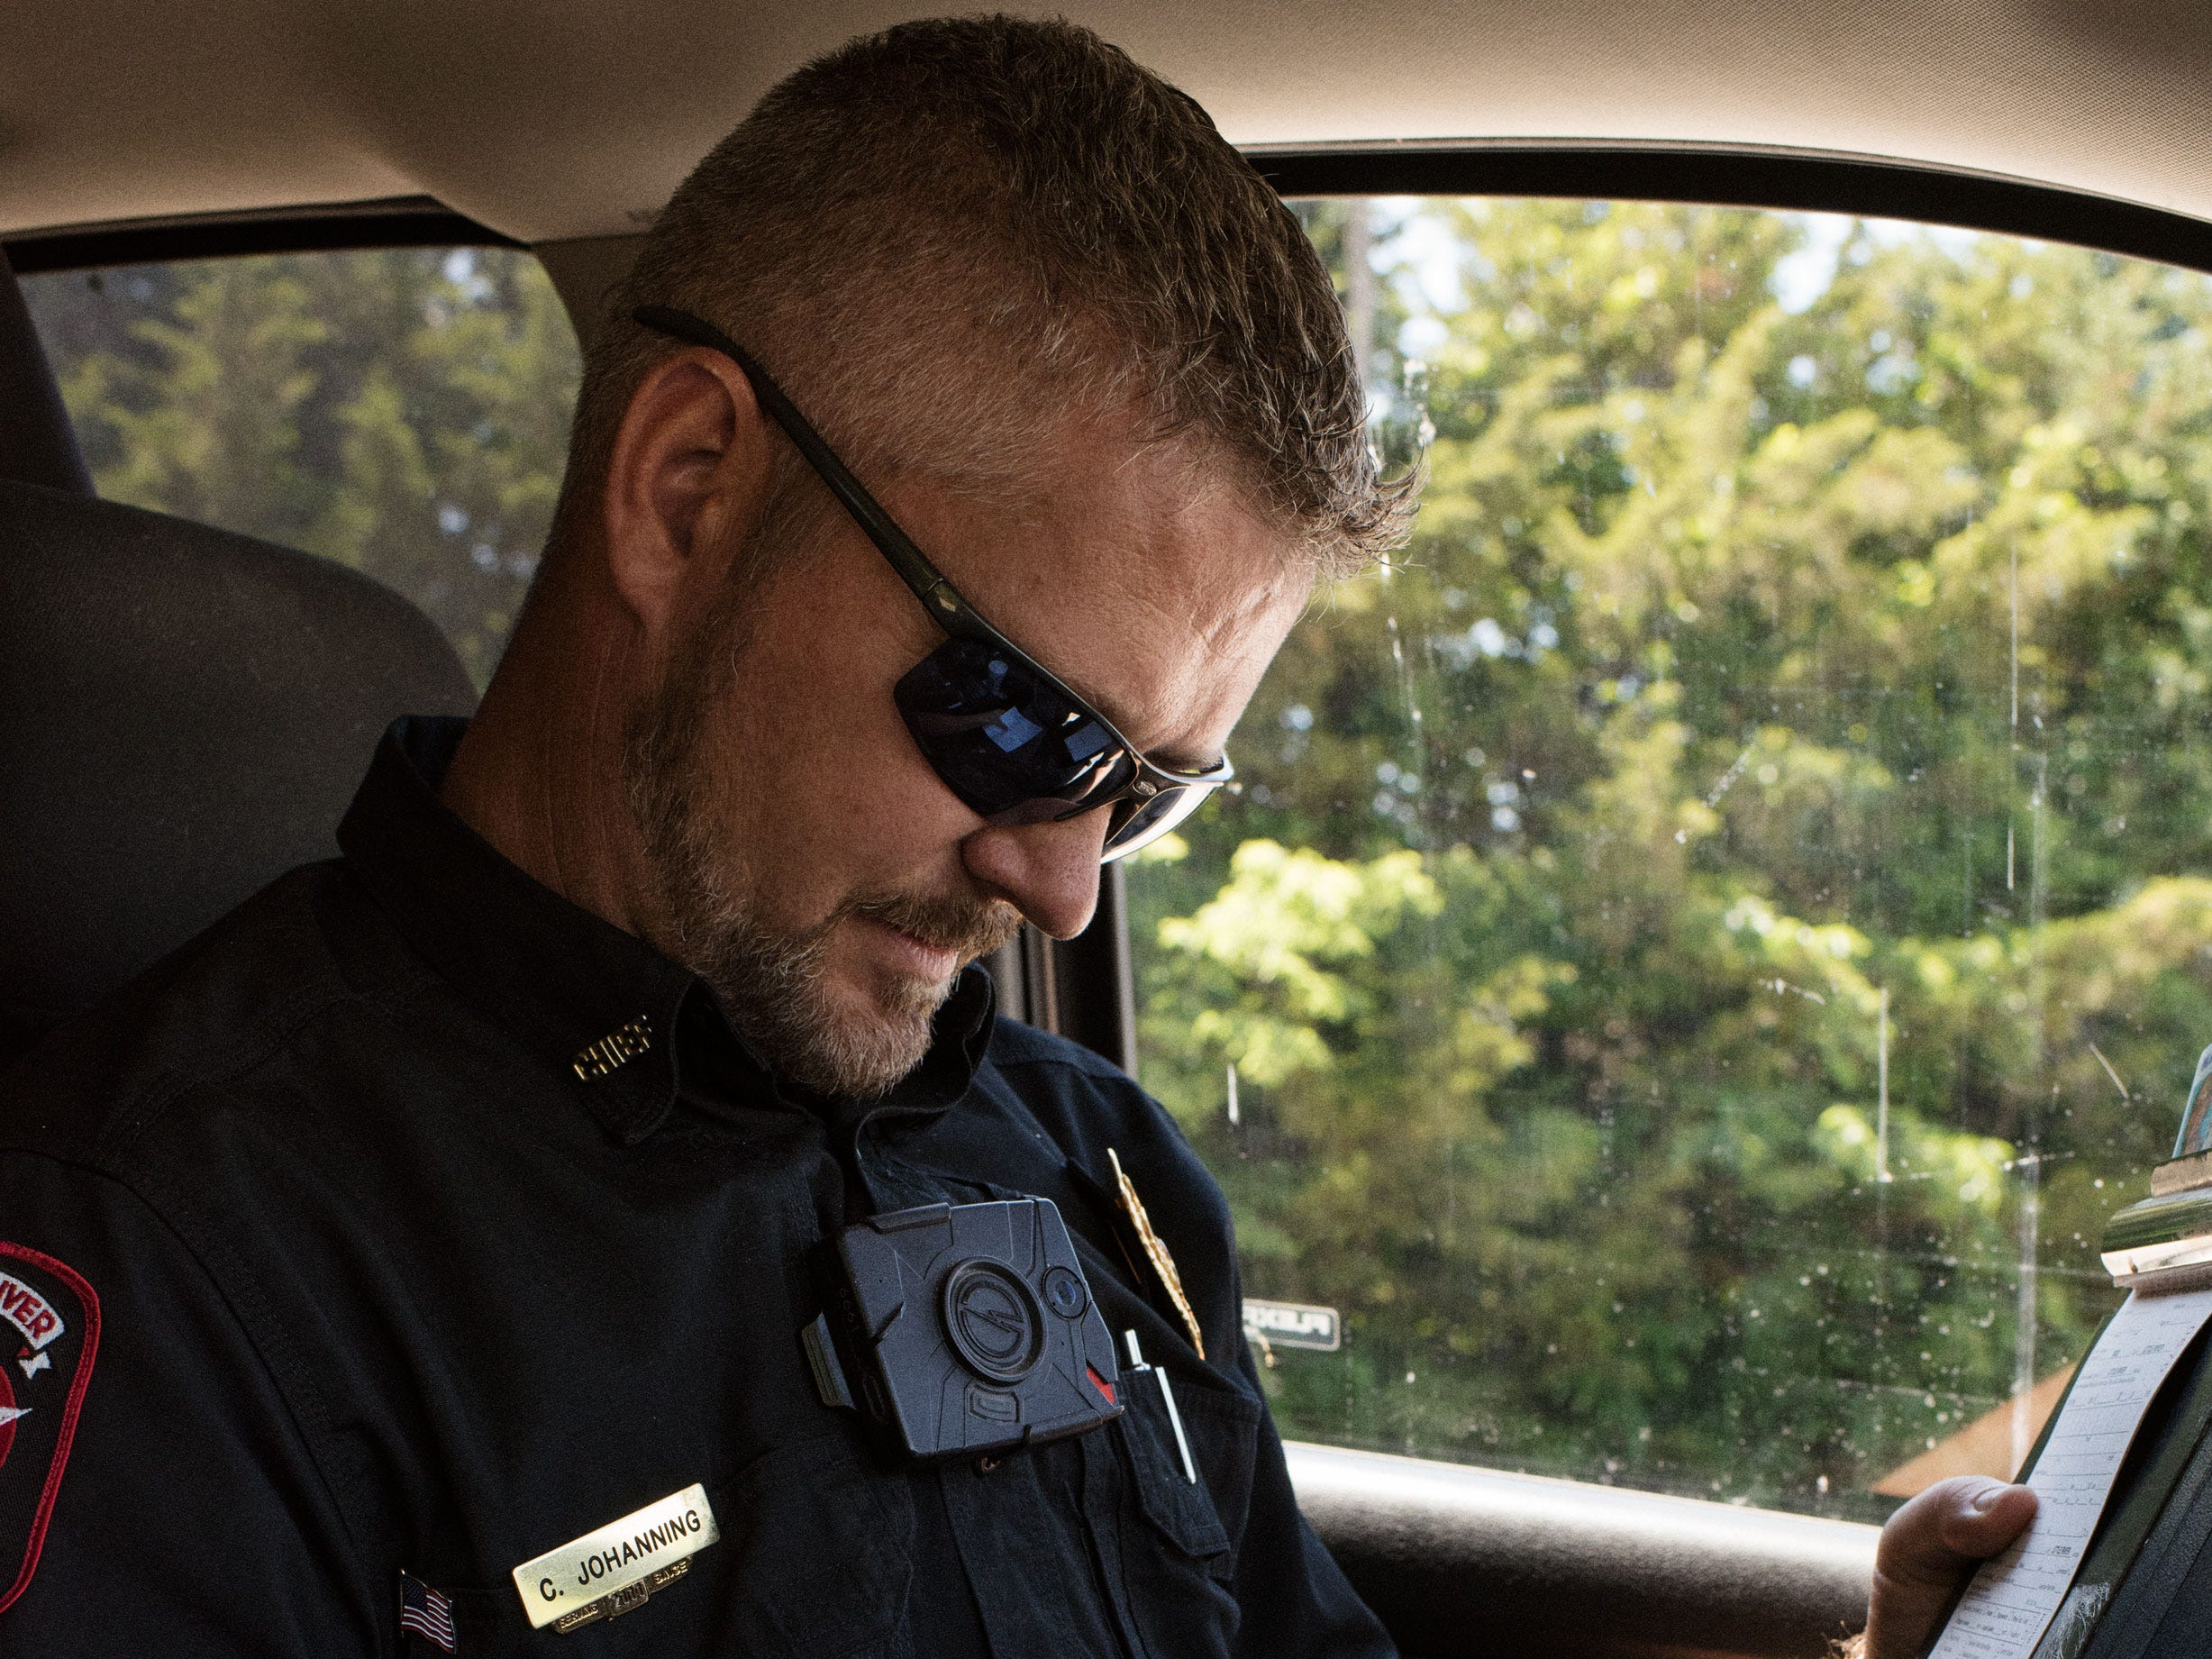 Little River has a low crime rate. As of July, Johanning had only arrested three people this year. Here, he writes a ticket charging a driver with failure to stop at a stop sign.